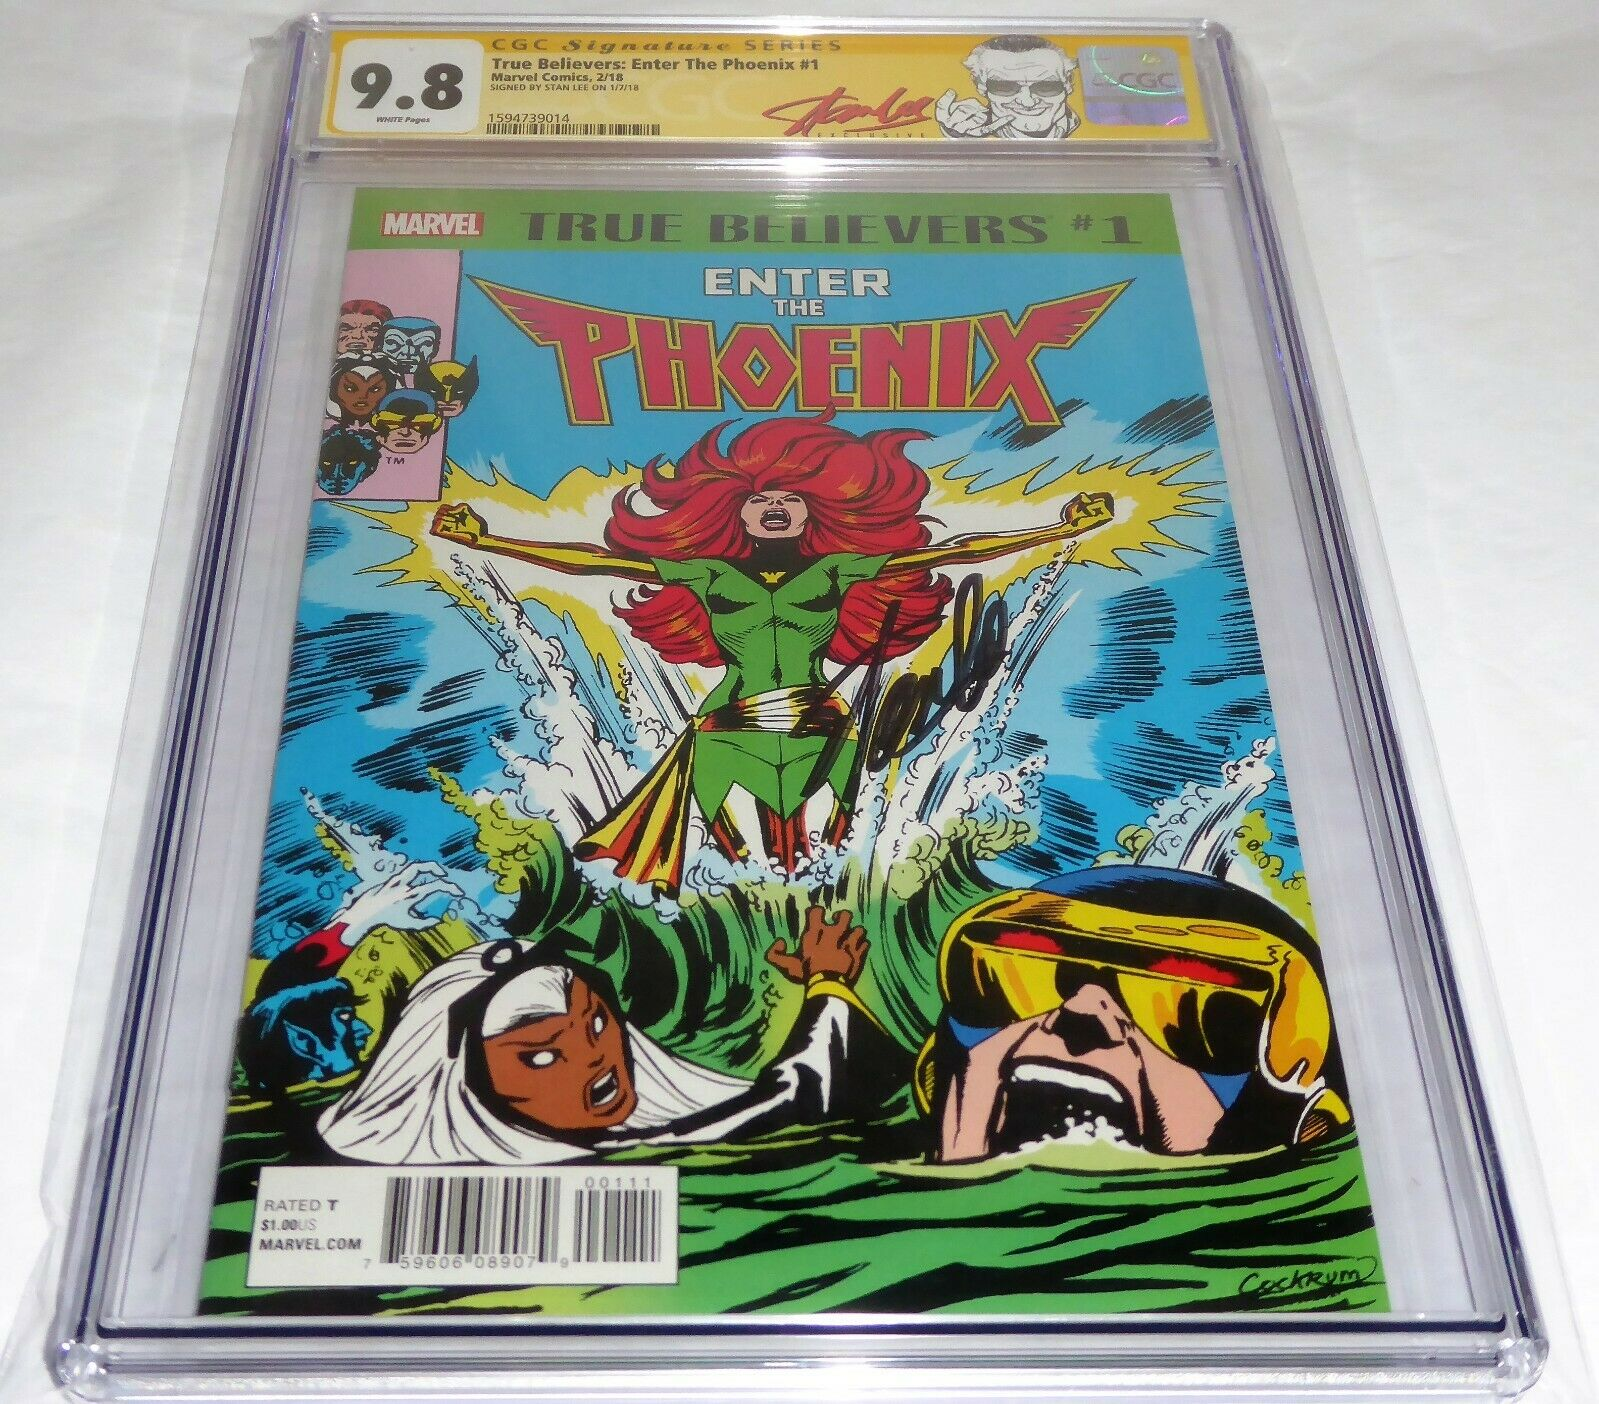 True Believers Enter the Phoenix #1 CGC SS 9.8 Signature Signed STAN LEE Reprint